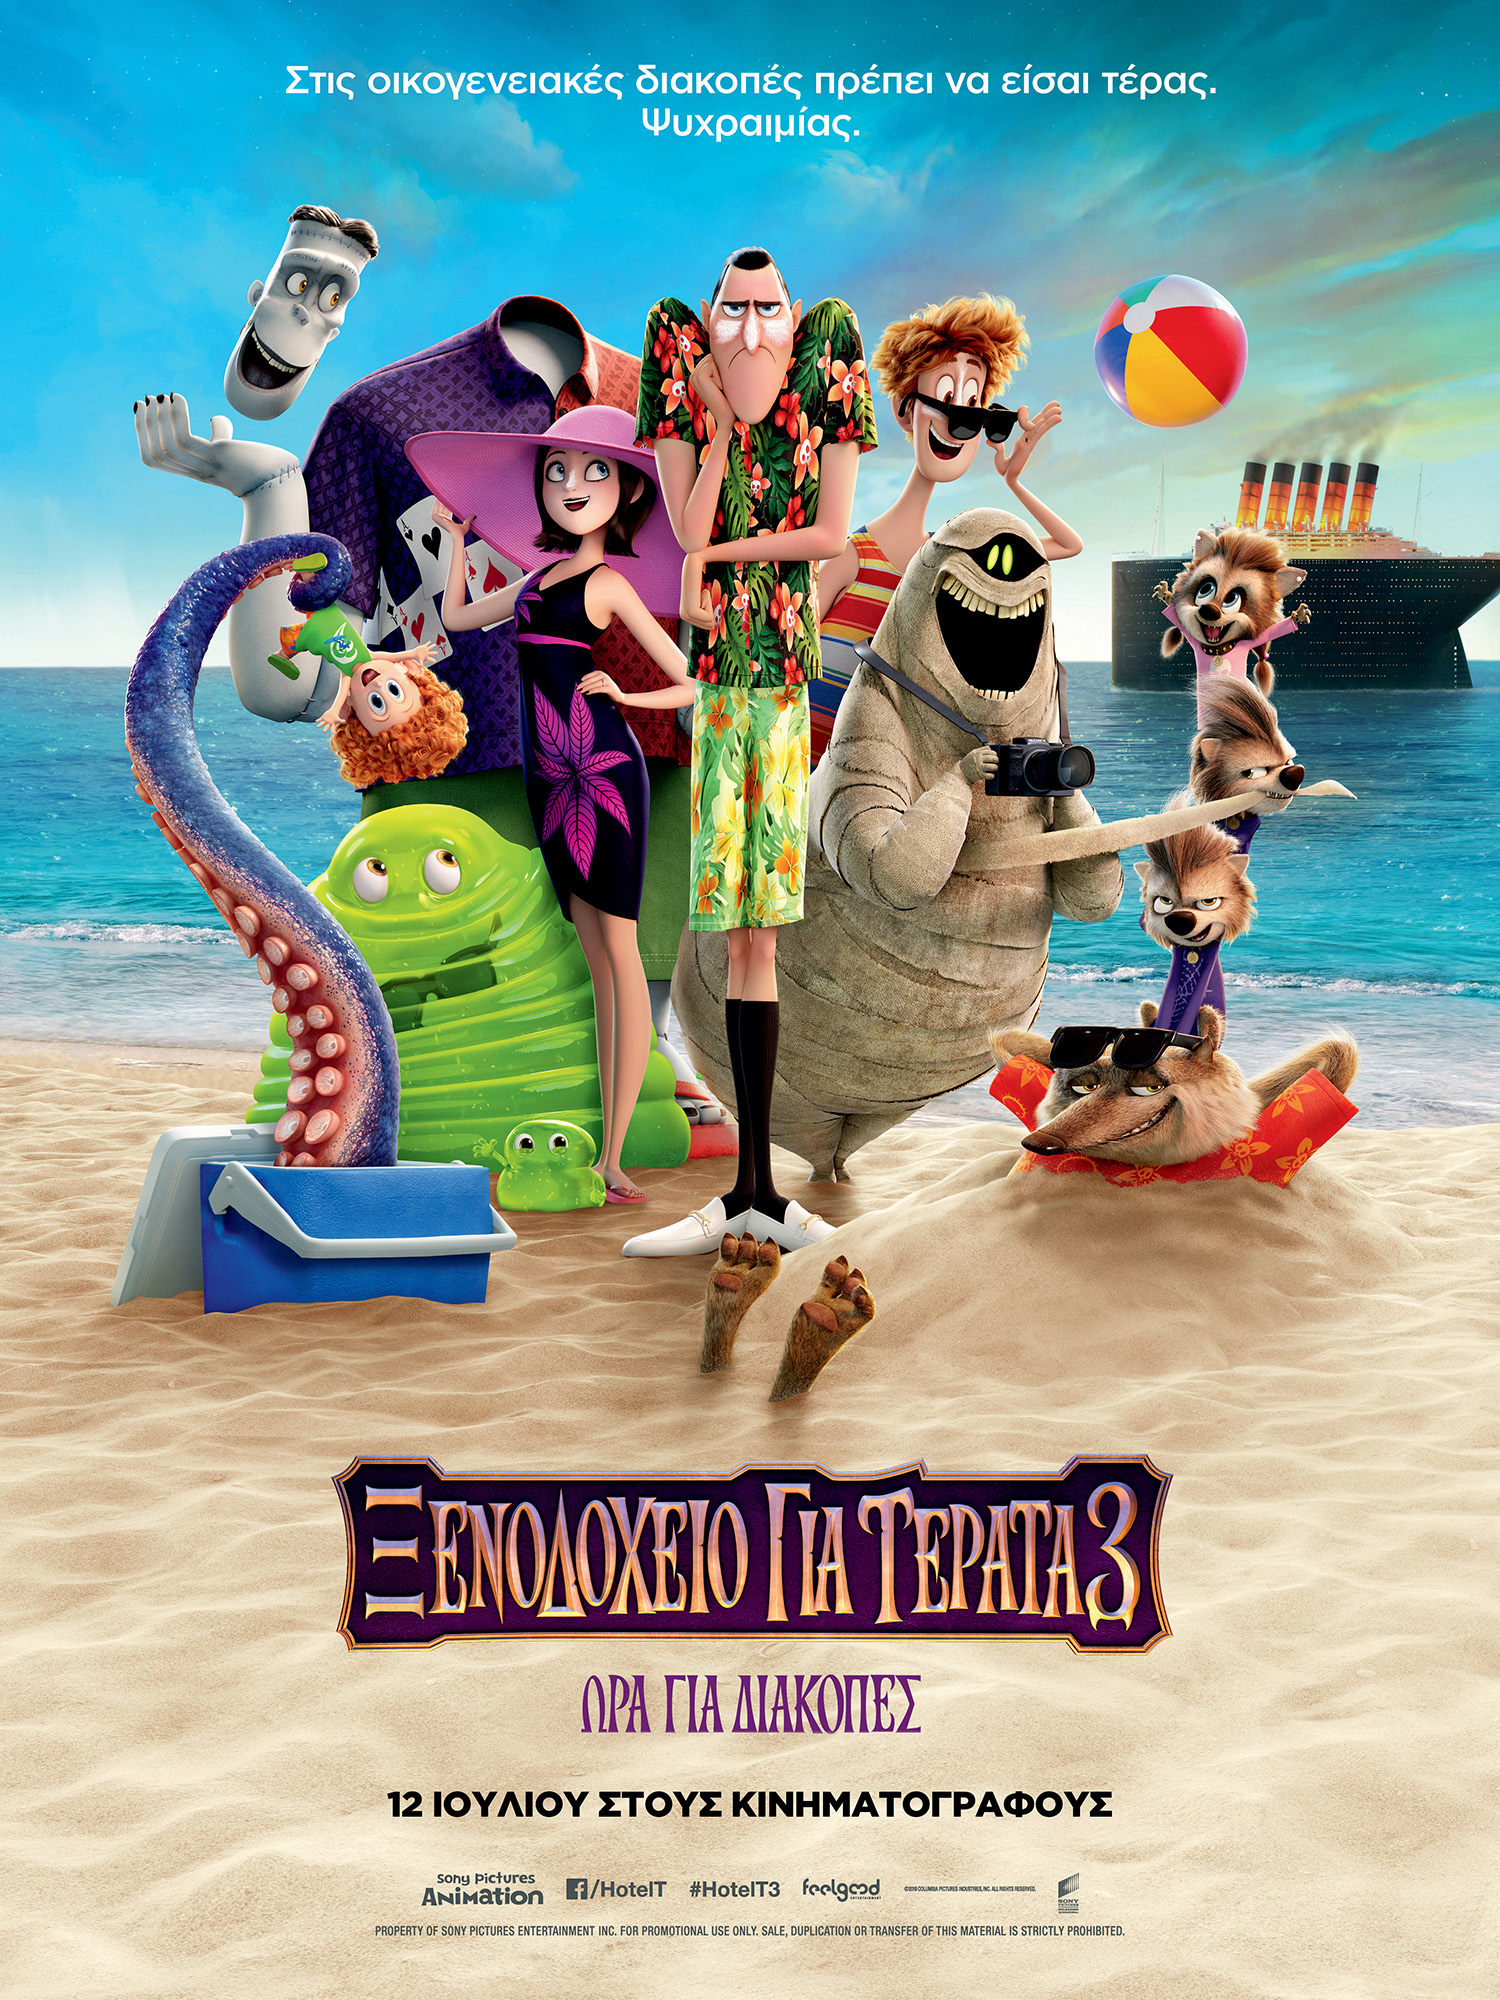 feelgood_hotel transylvania_in theater poster (vertcal)_May 18_F